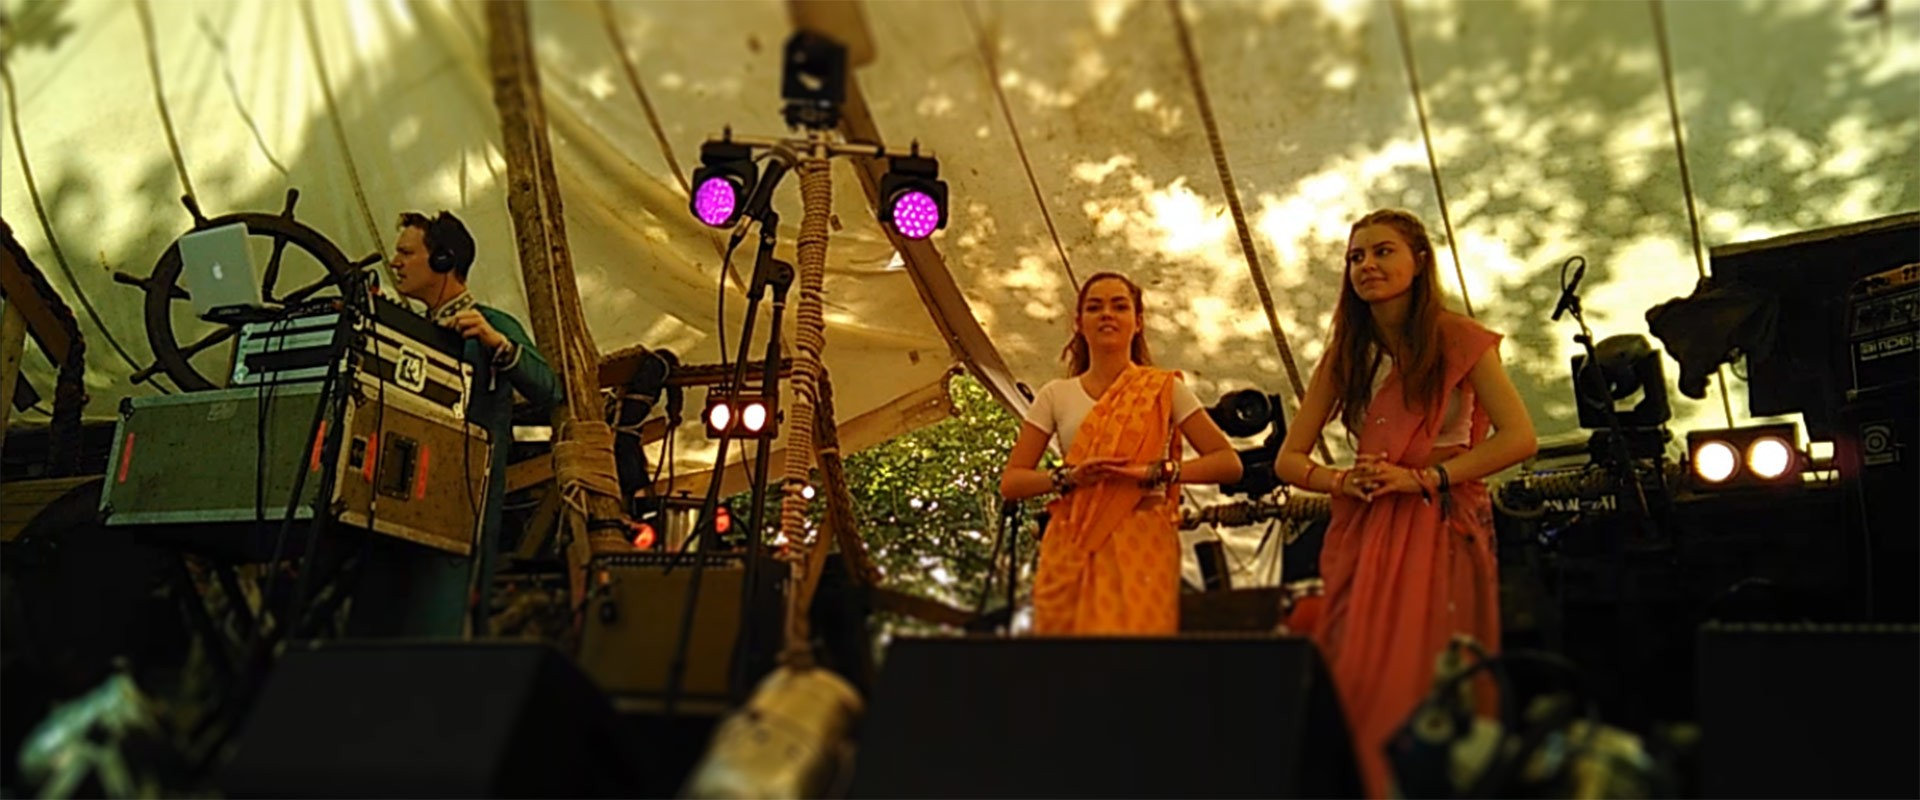 Bollywood @ Salty Dog Stage, Electric Picnic 2015